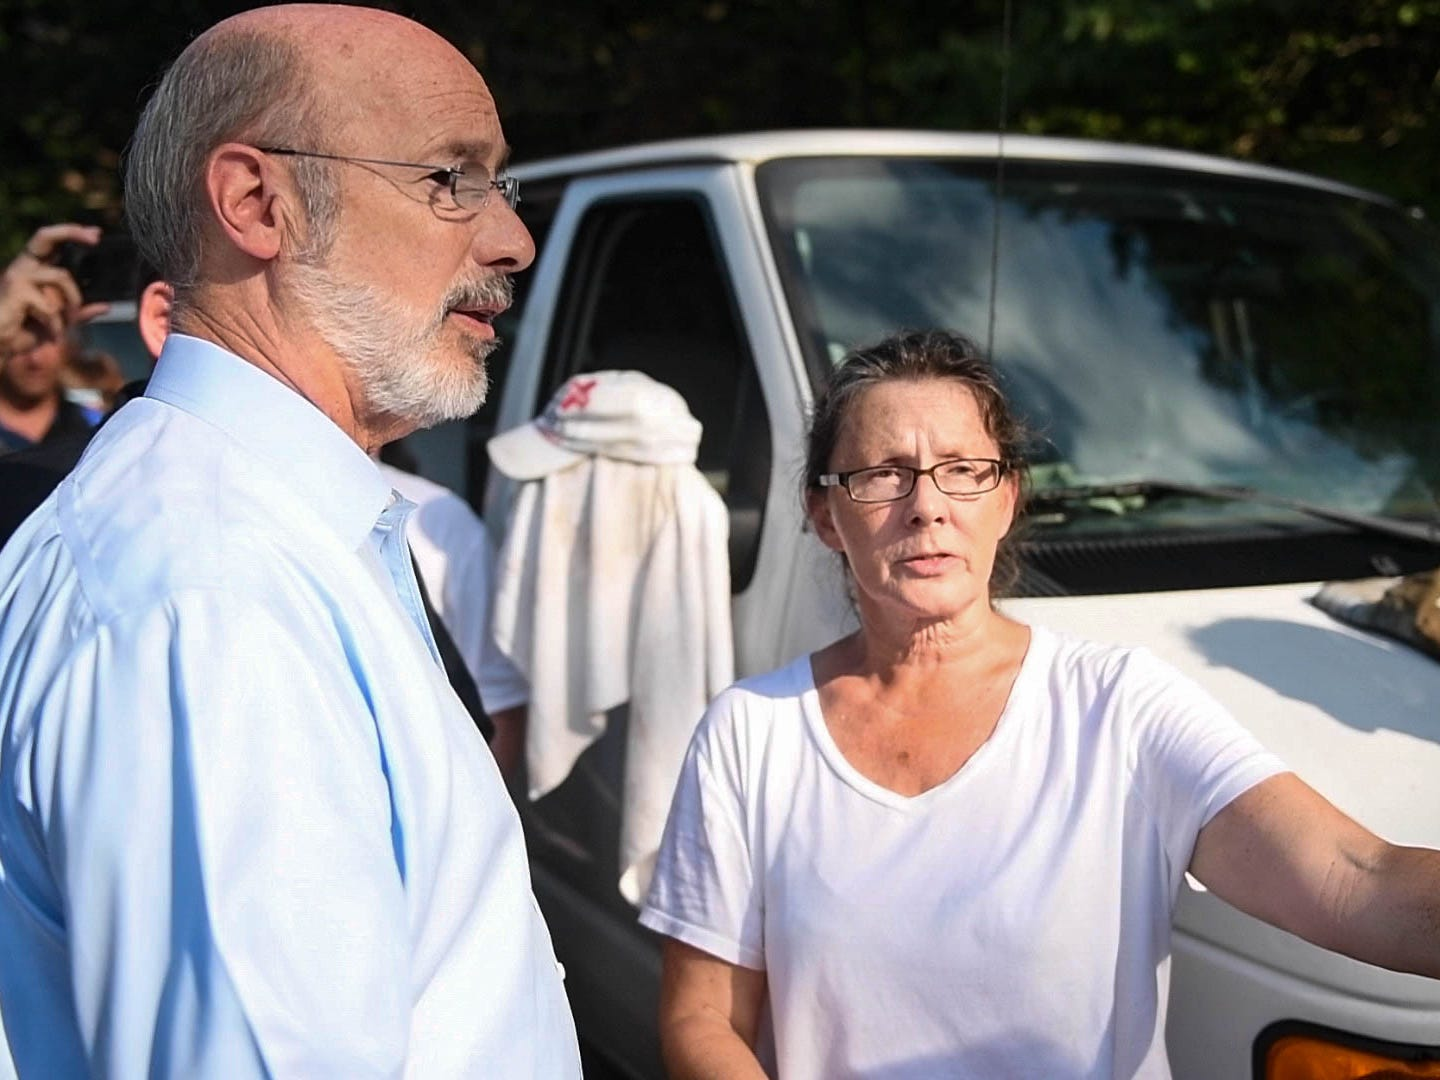 Gov. Wolf meets Amy Nevin, a homeowner whose property was devastated by the flood, during his visit to York County, on Wednesday, September 5, 2018.